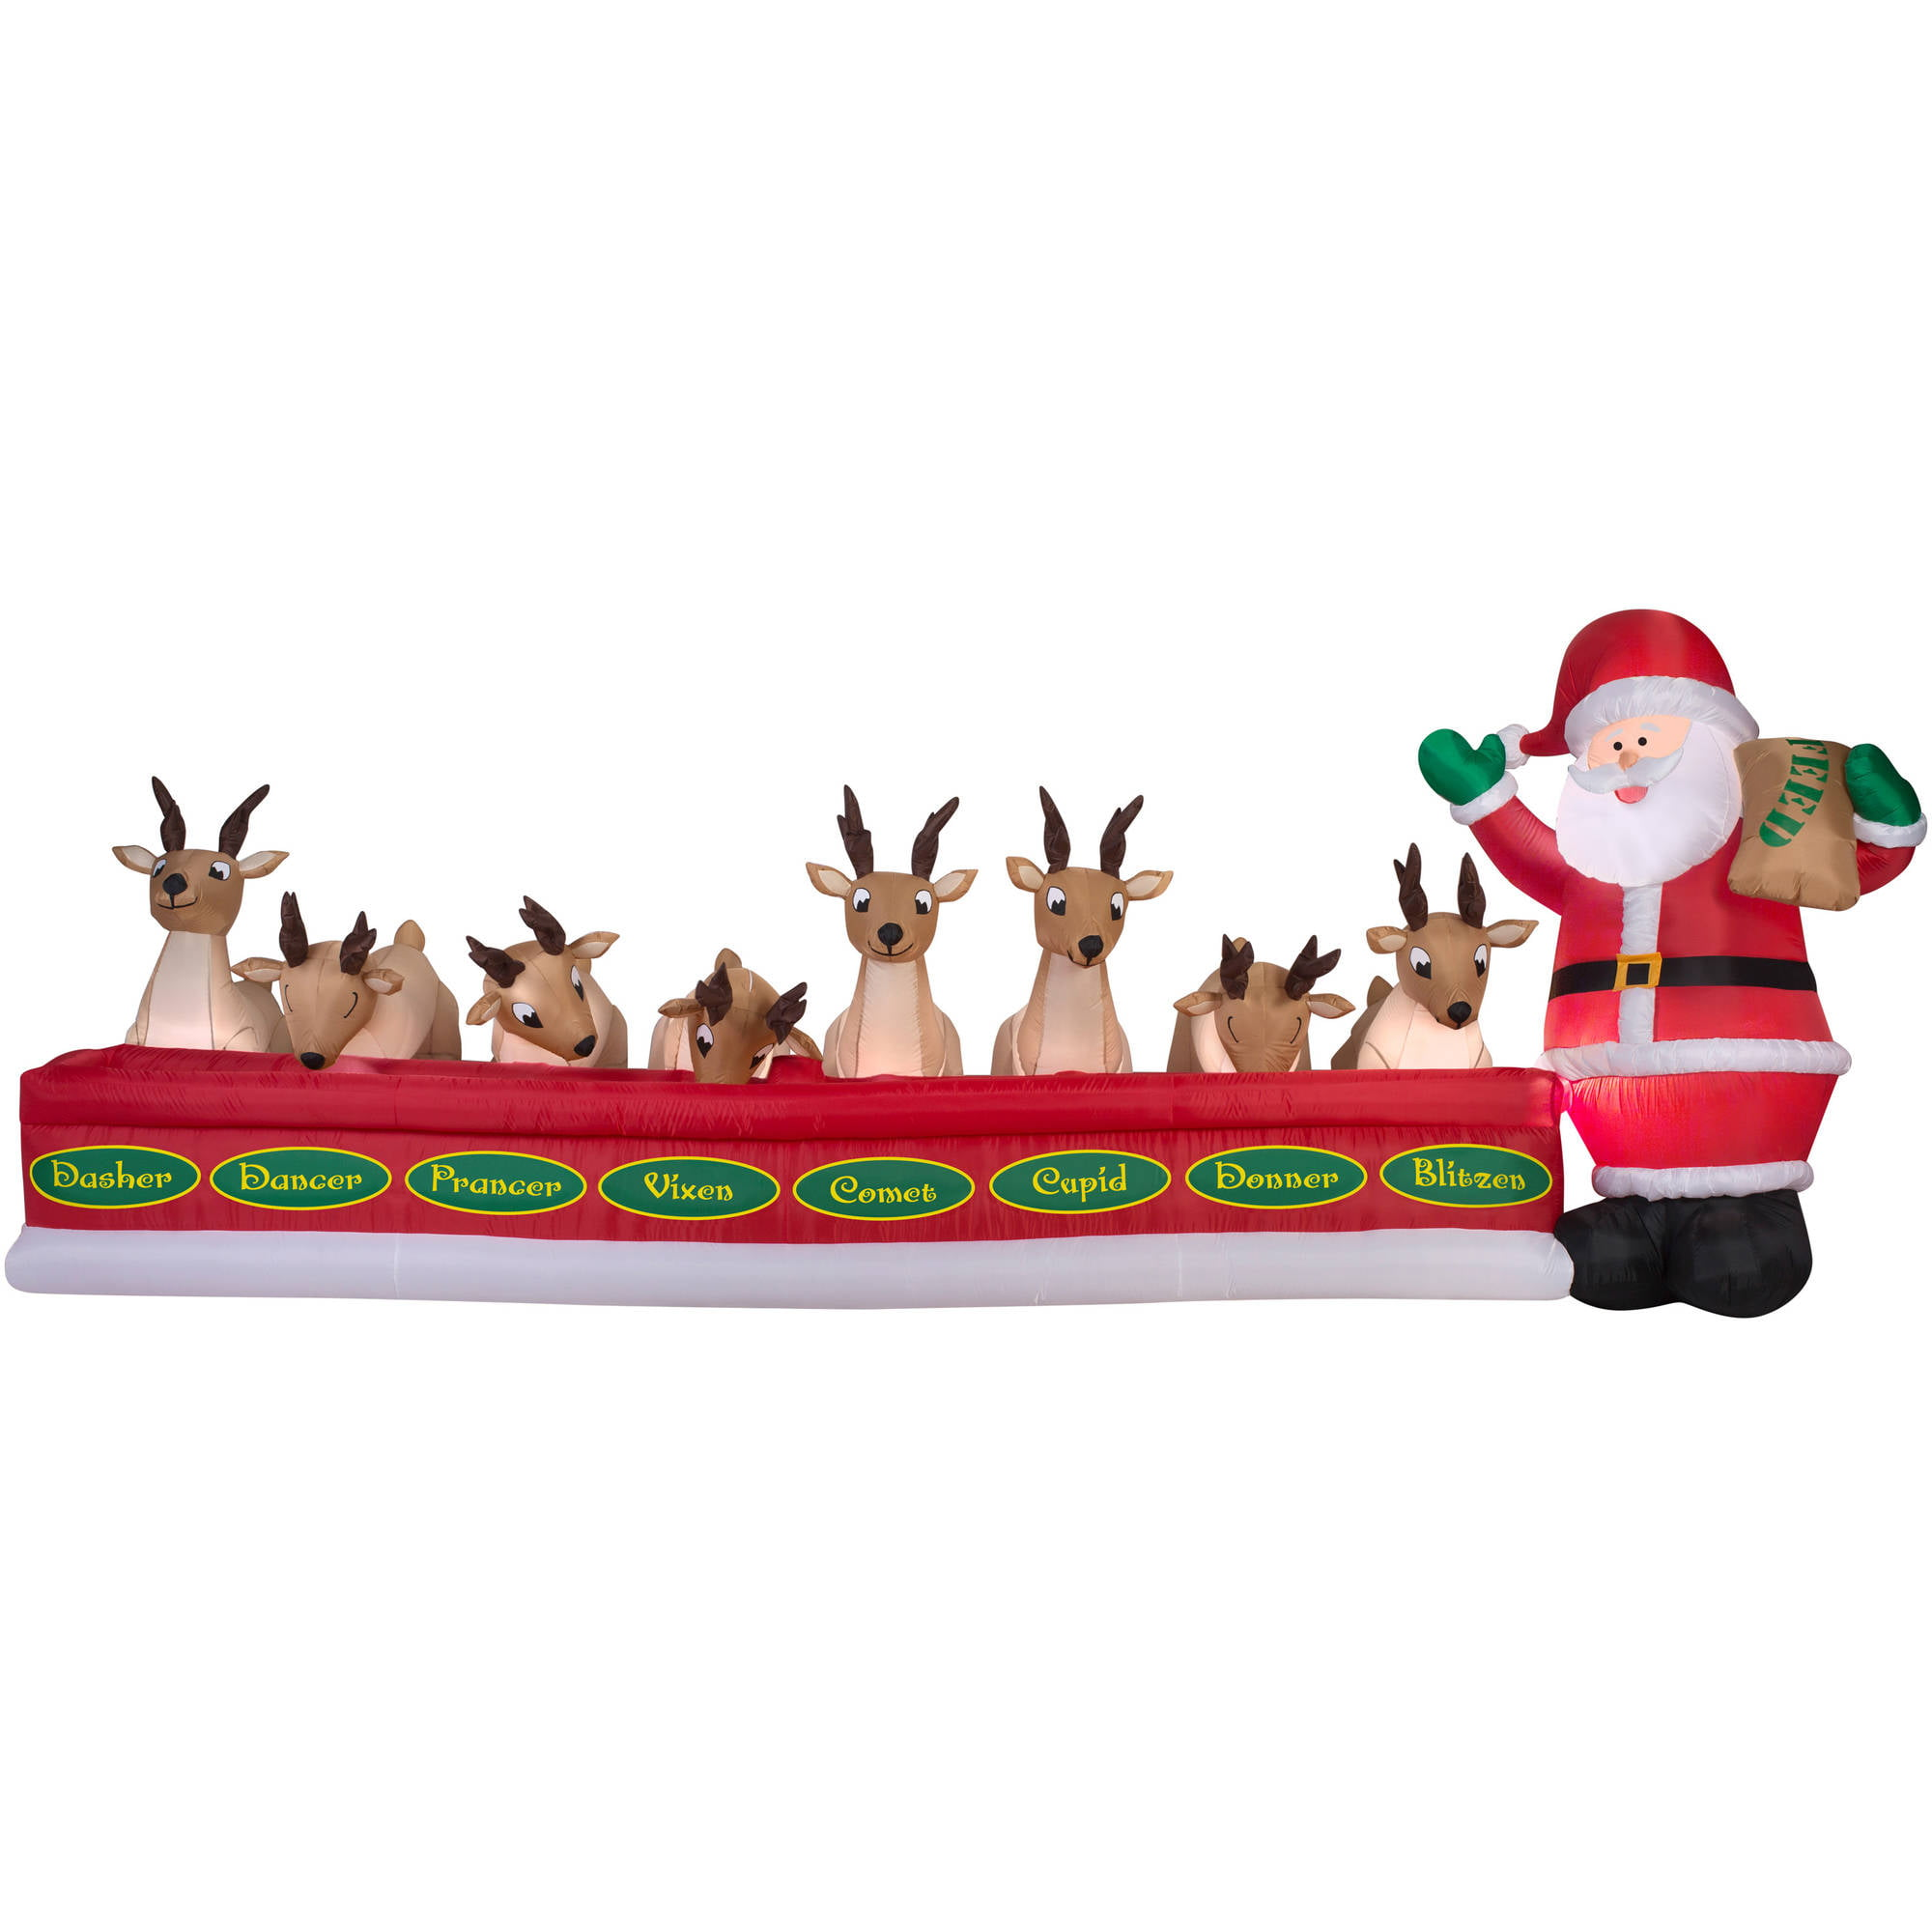 Animated Airblown Inflatables 16.5u0027 Wide Santa Feeding 8 Reindeer By Gemmy  Industries   Walmart.com